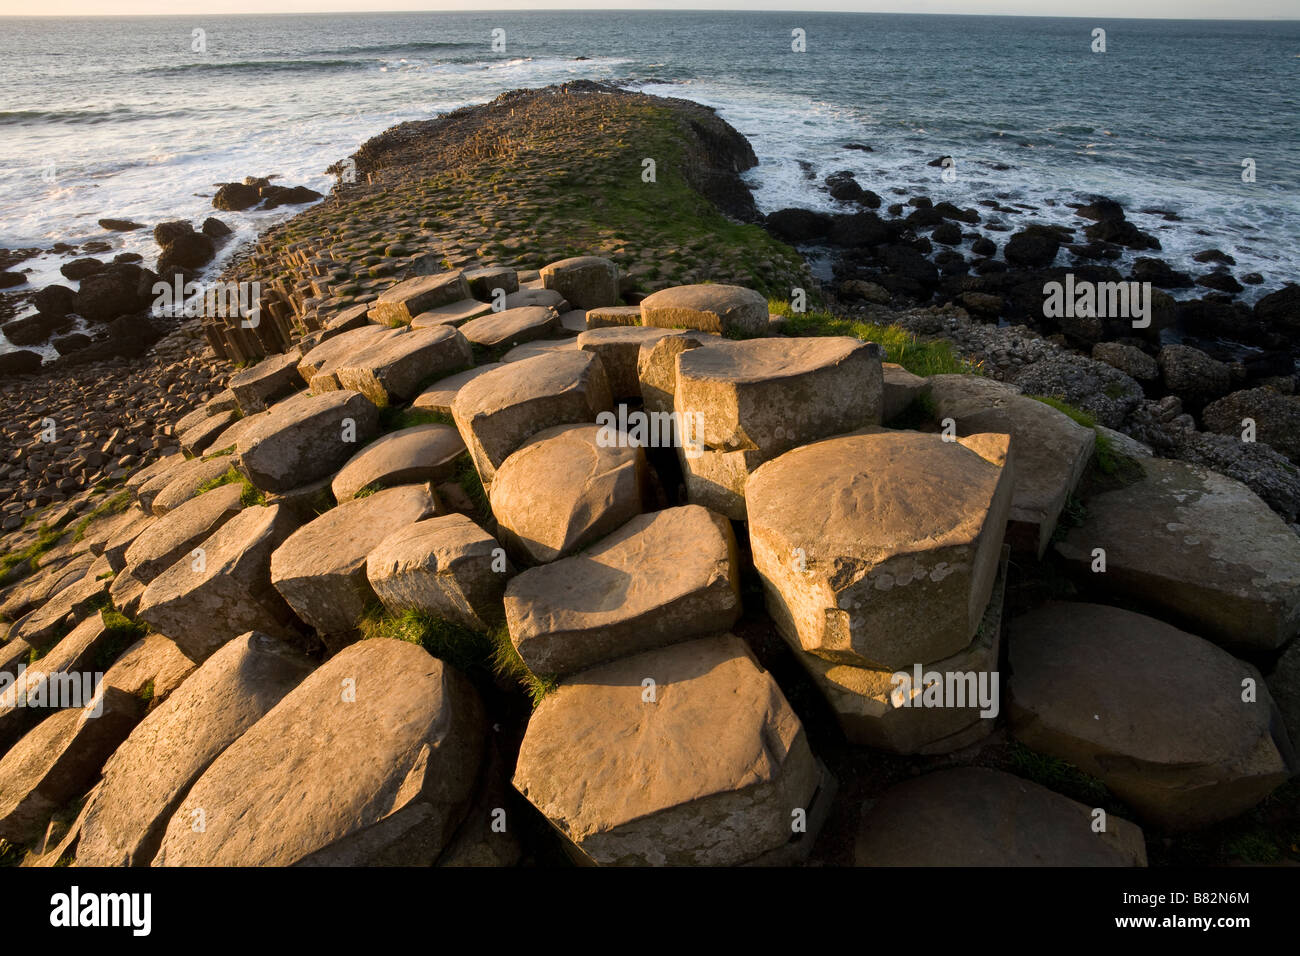 Causeway to Scotland. Hexagonal columns of basalt glow in the afternoon sun as they step down toward the crashing - Stock Image